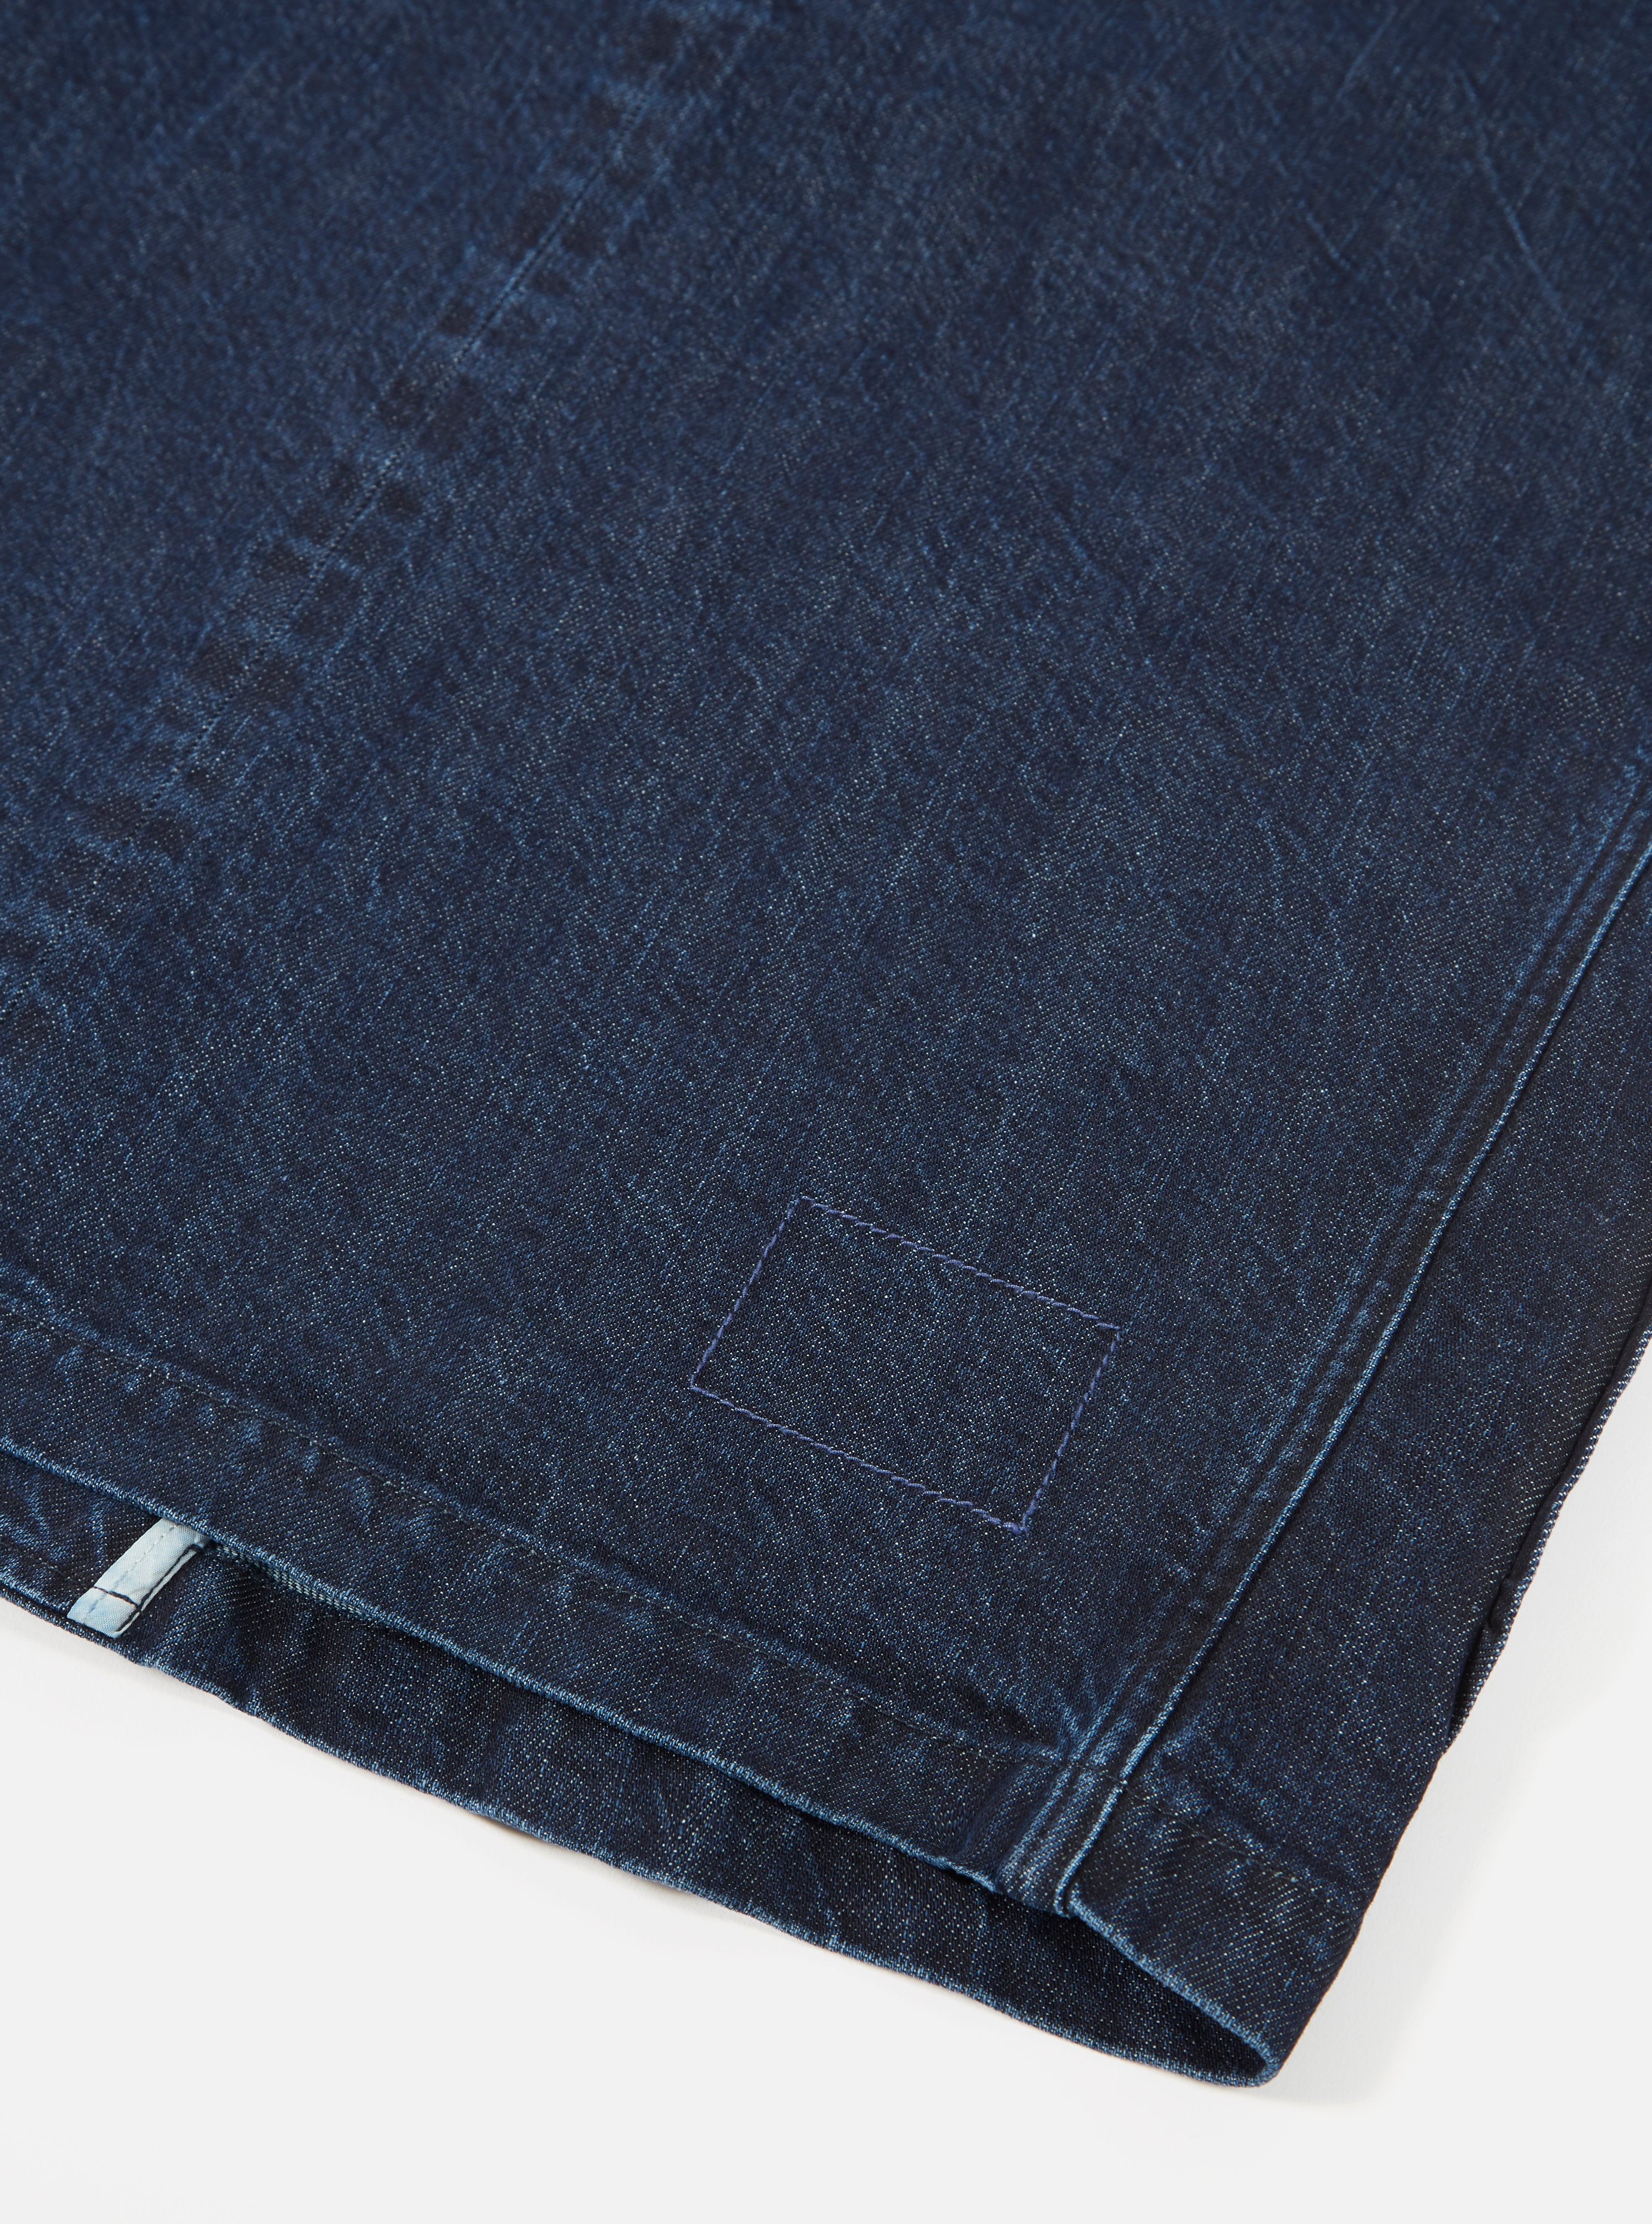 Universal Works Three Button Jacket in Washed Indigo Selvedge PT Denim